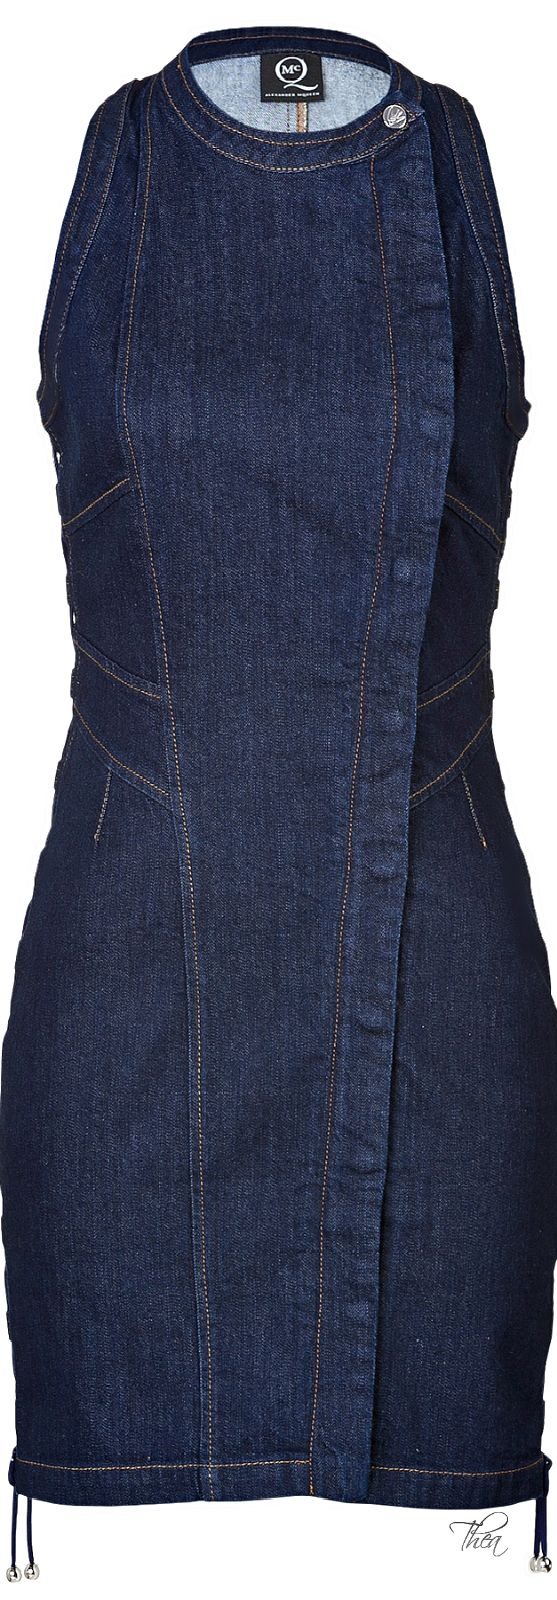 McQ by Alexander McQueen ● Blue Bodycon Denim Dress